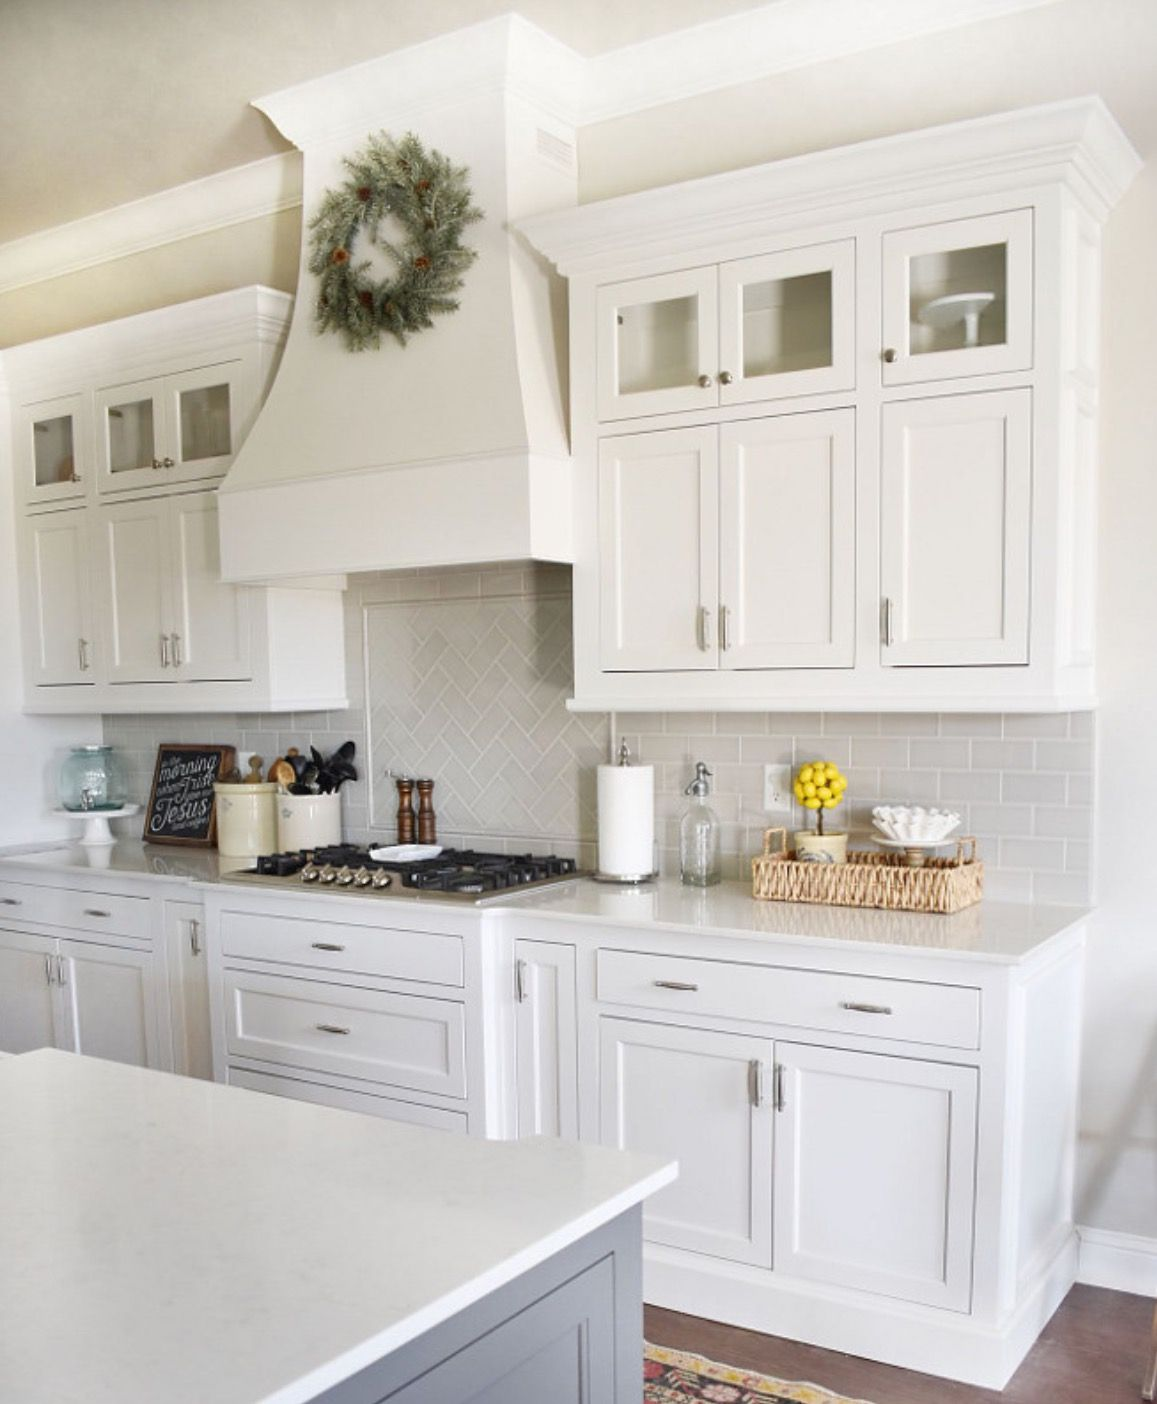 Kitchen Cabinets Grey Lower White Upper: White Kitchen With Glass Inserts In Upper Cabinets